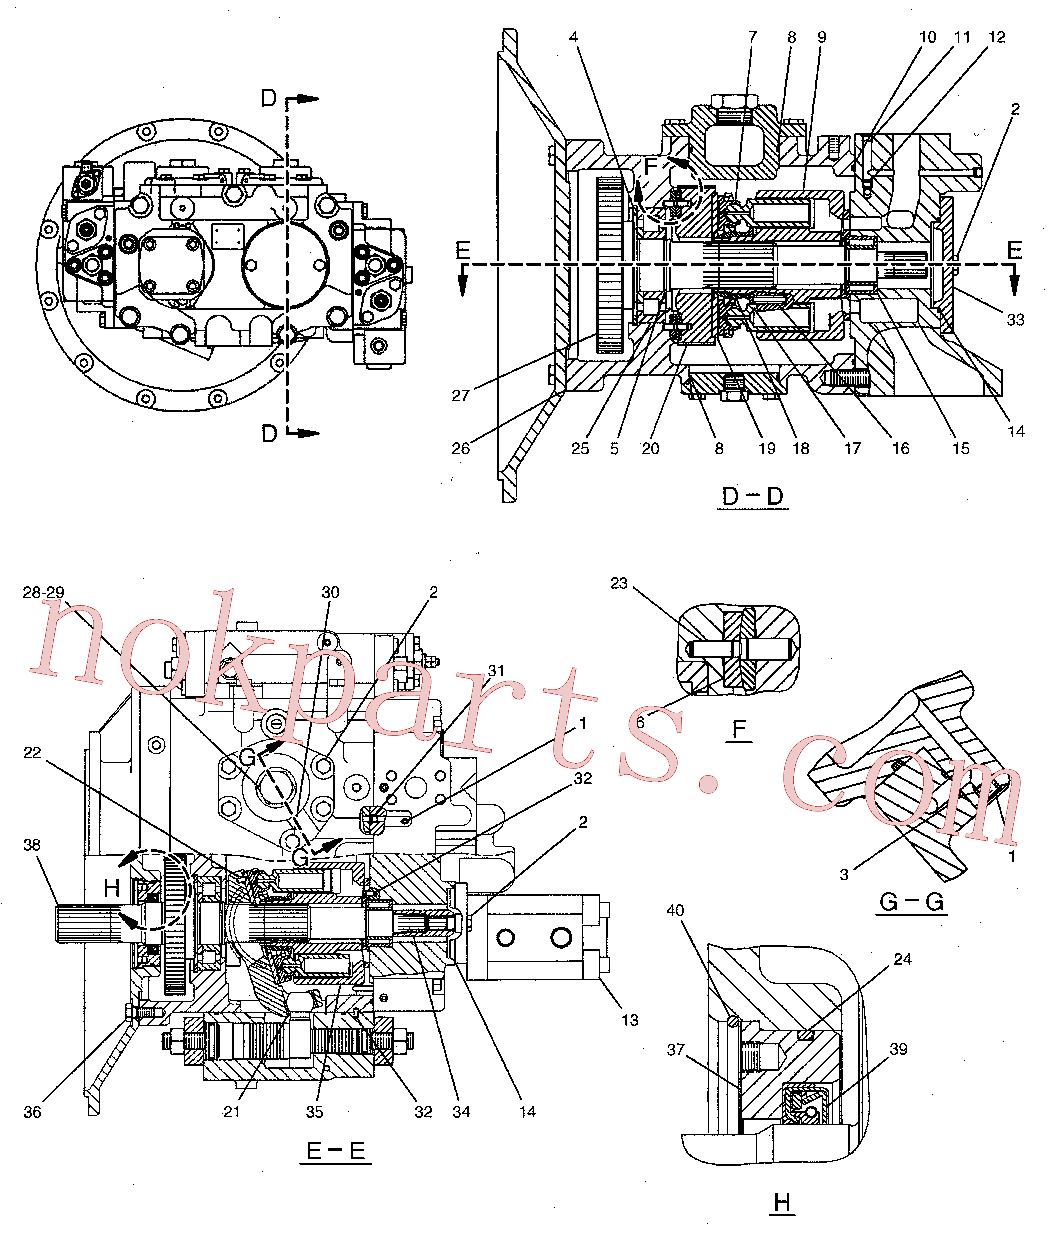 CAT 129-7979 for 329D2 L Excavator(EXC) hydraulic system 244-8477 Assembly